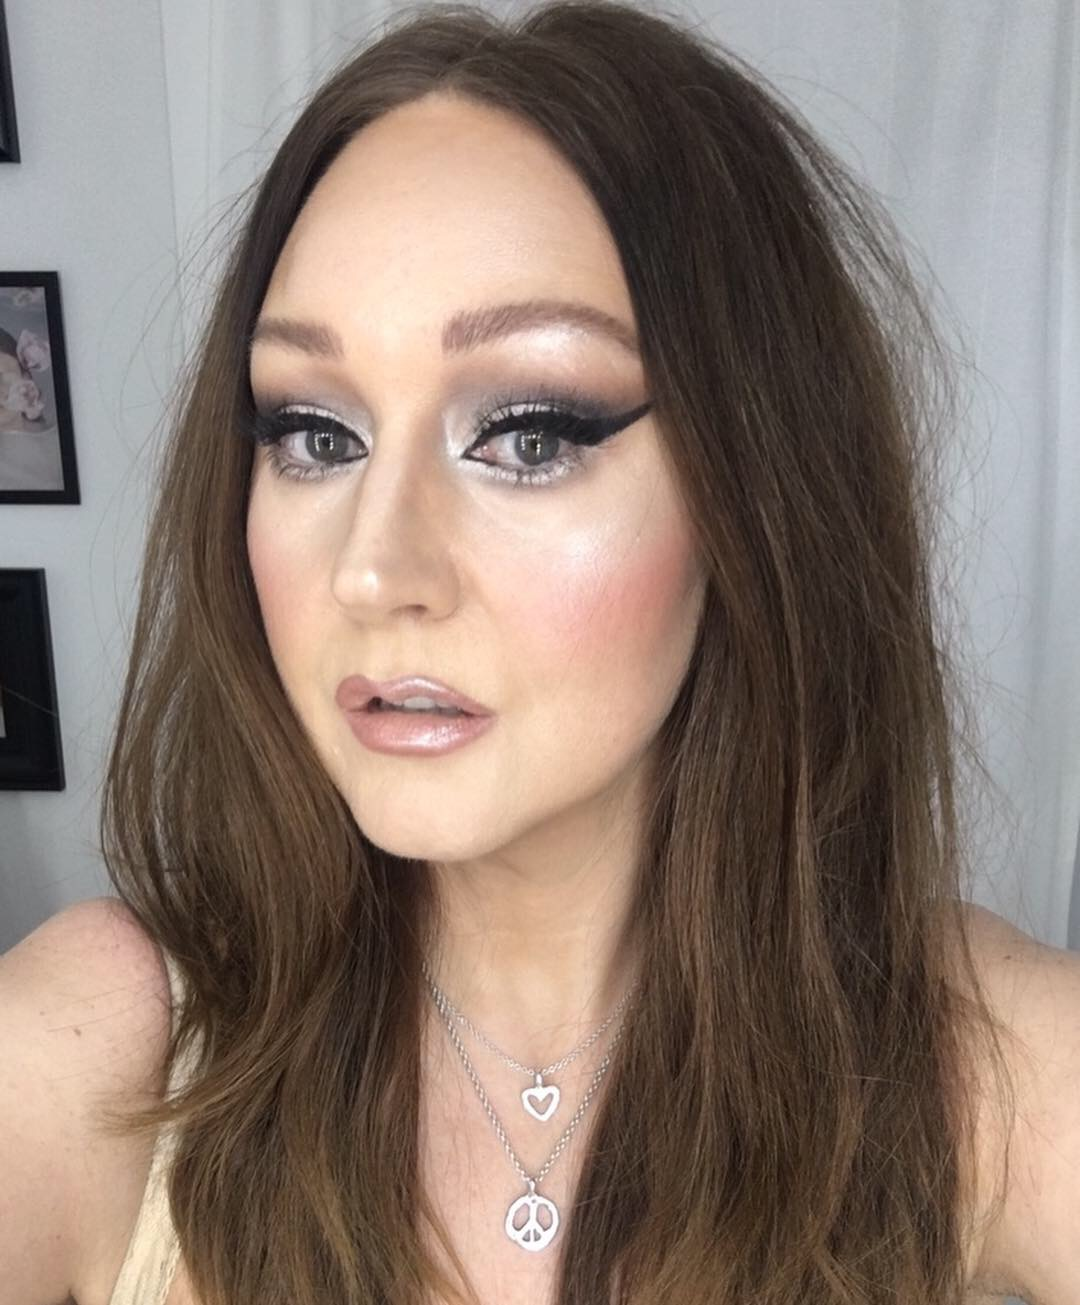 Kevyn Aucoin inspired make-up.